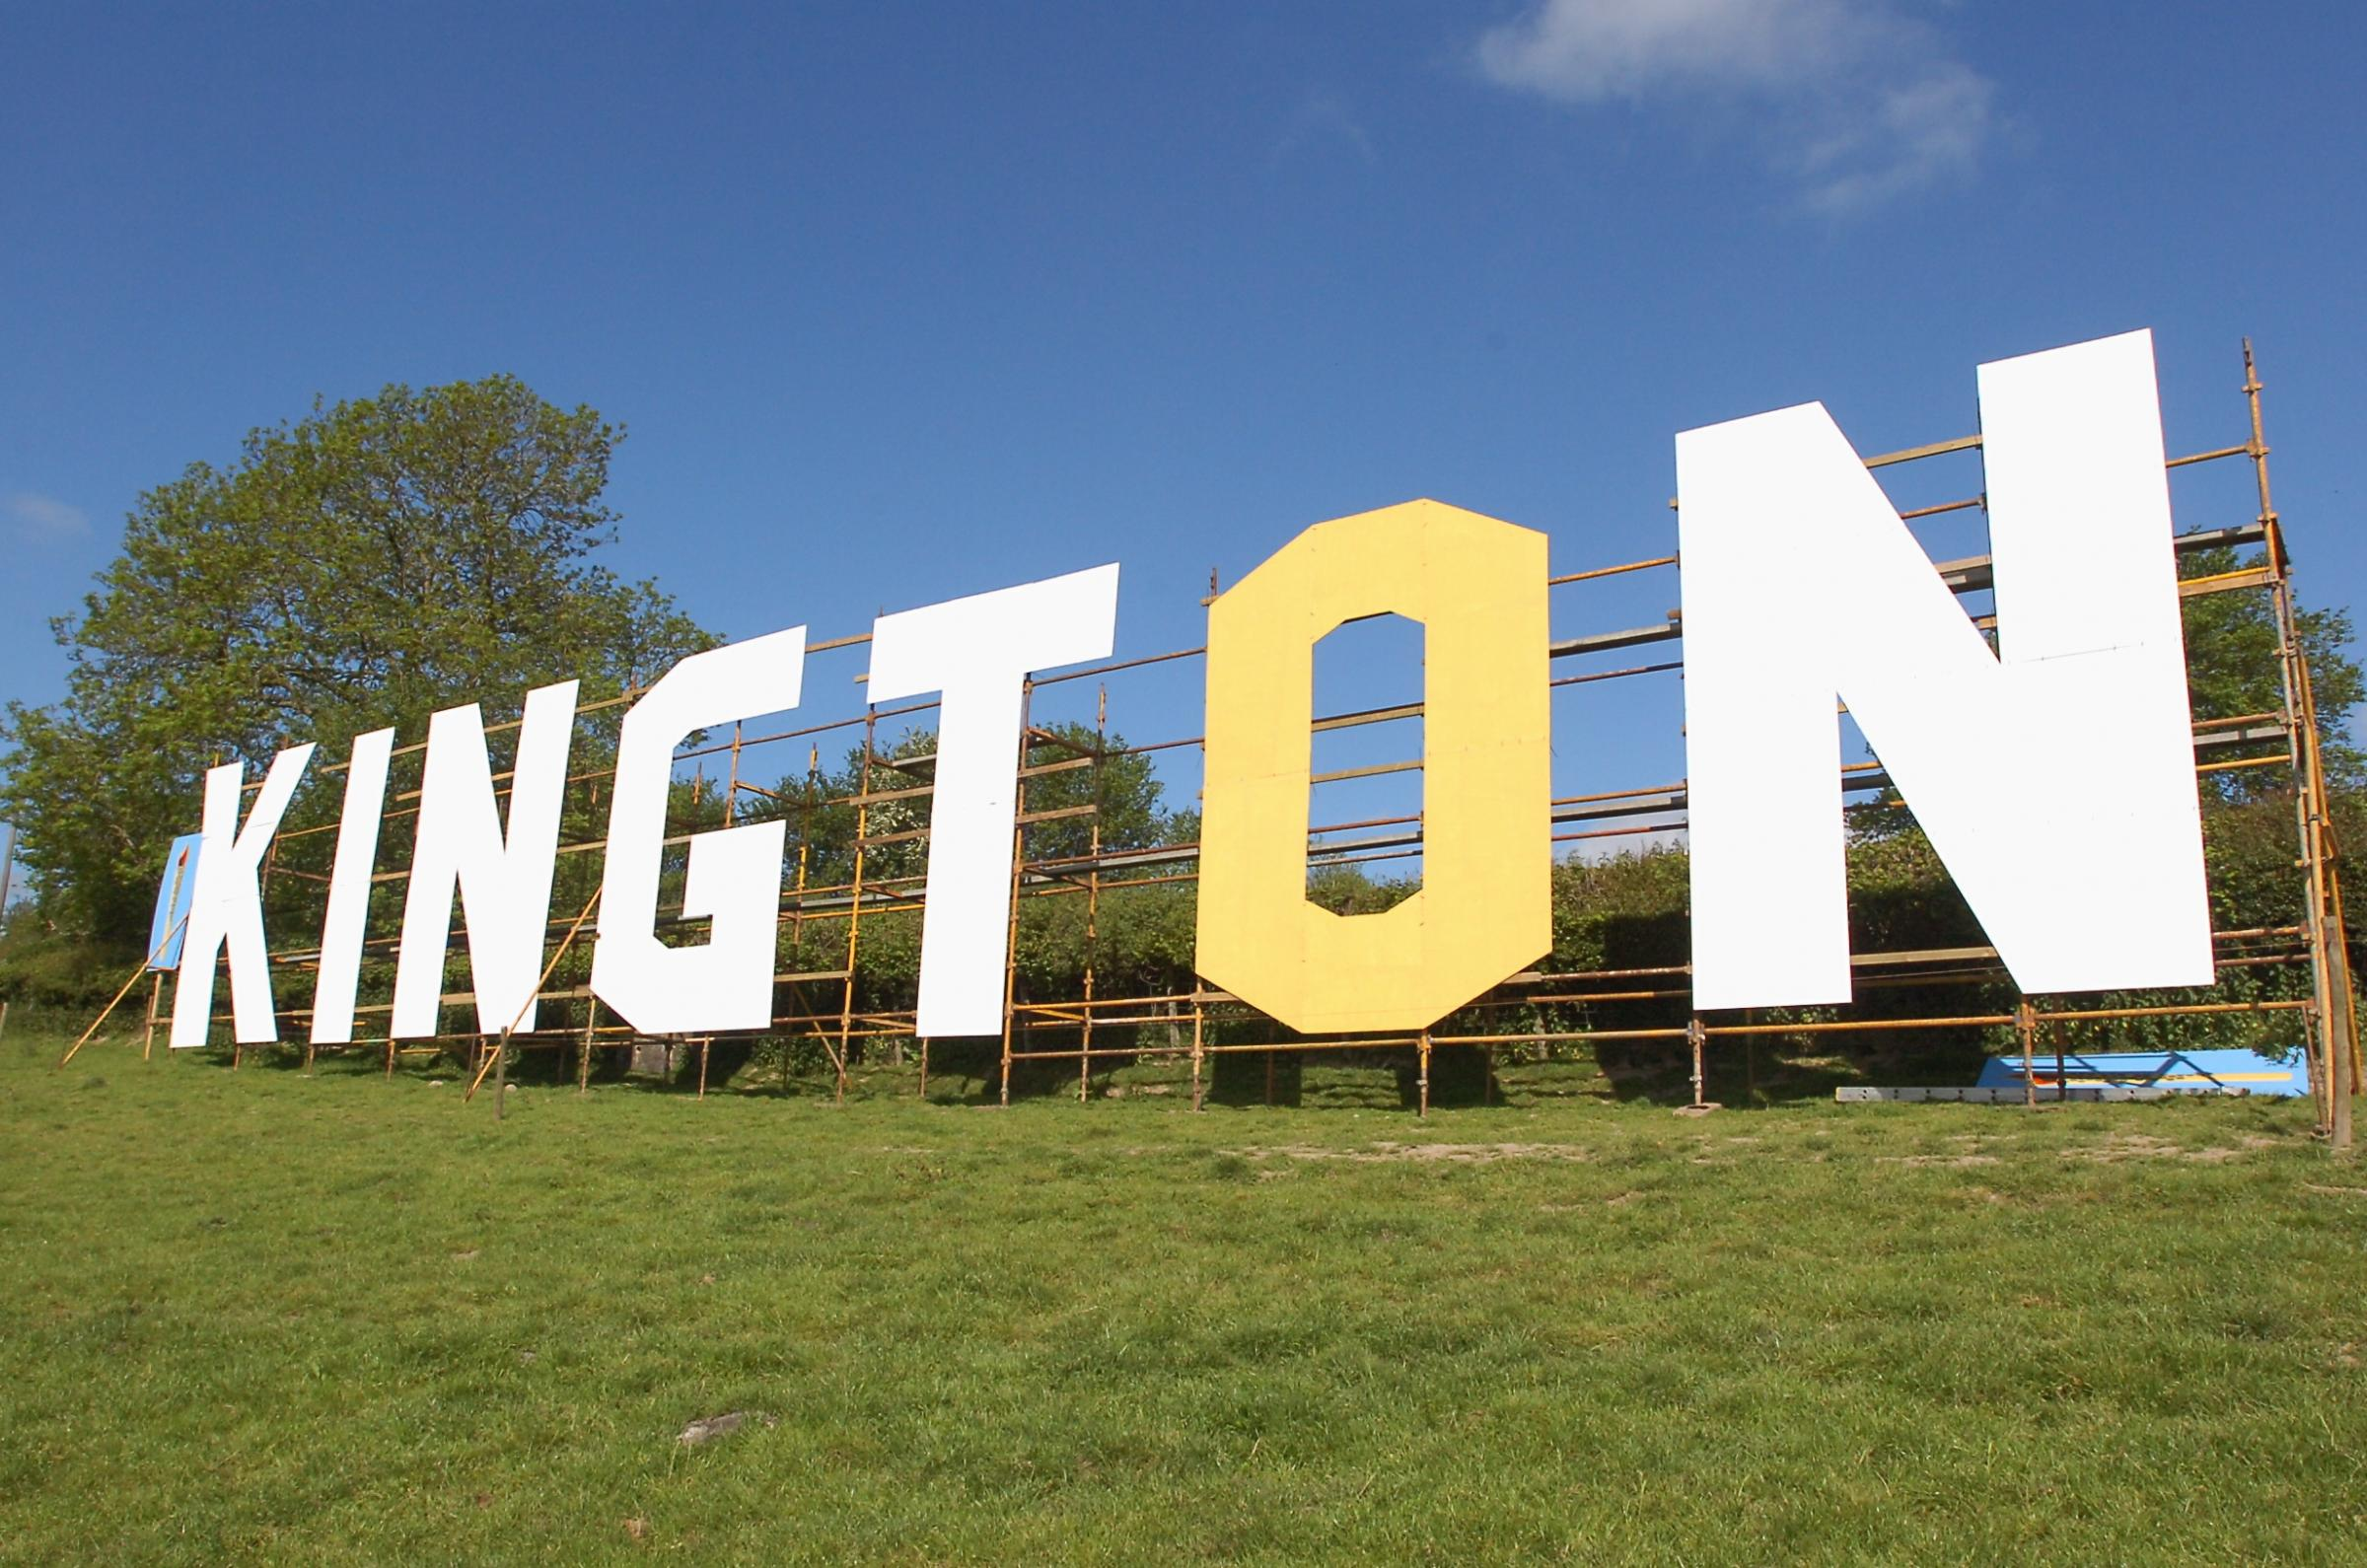 Kington Museum is searching for the area's most creative limerick.